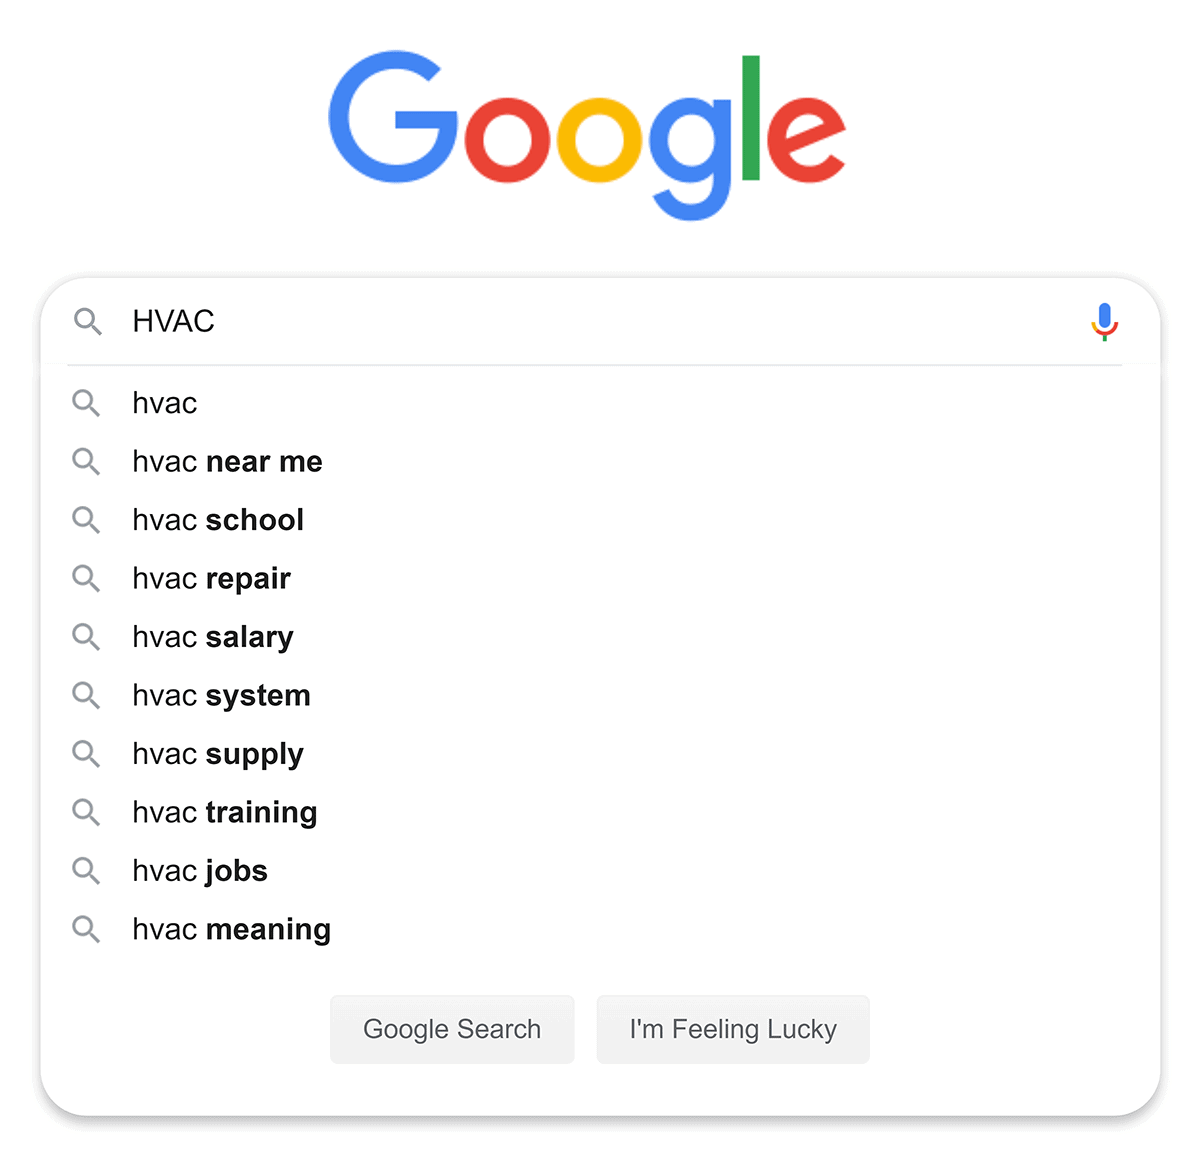 """Google suggestions for """"HVAC"""" search"""